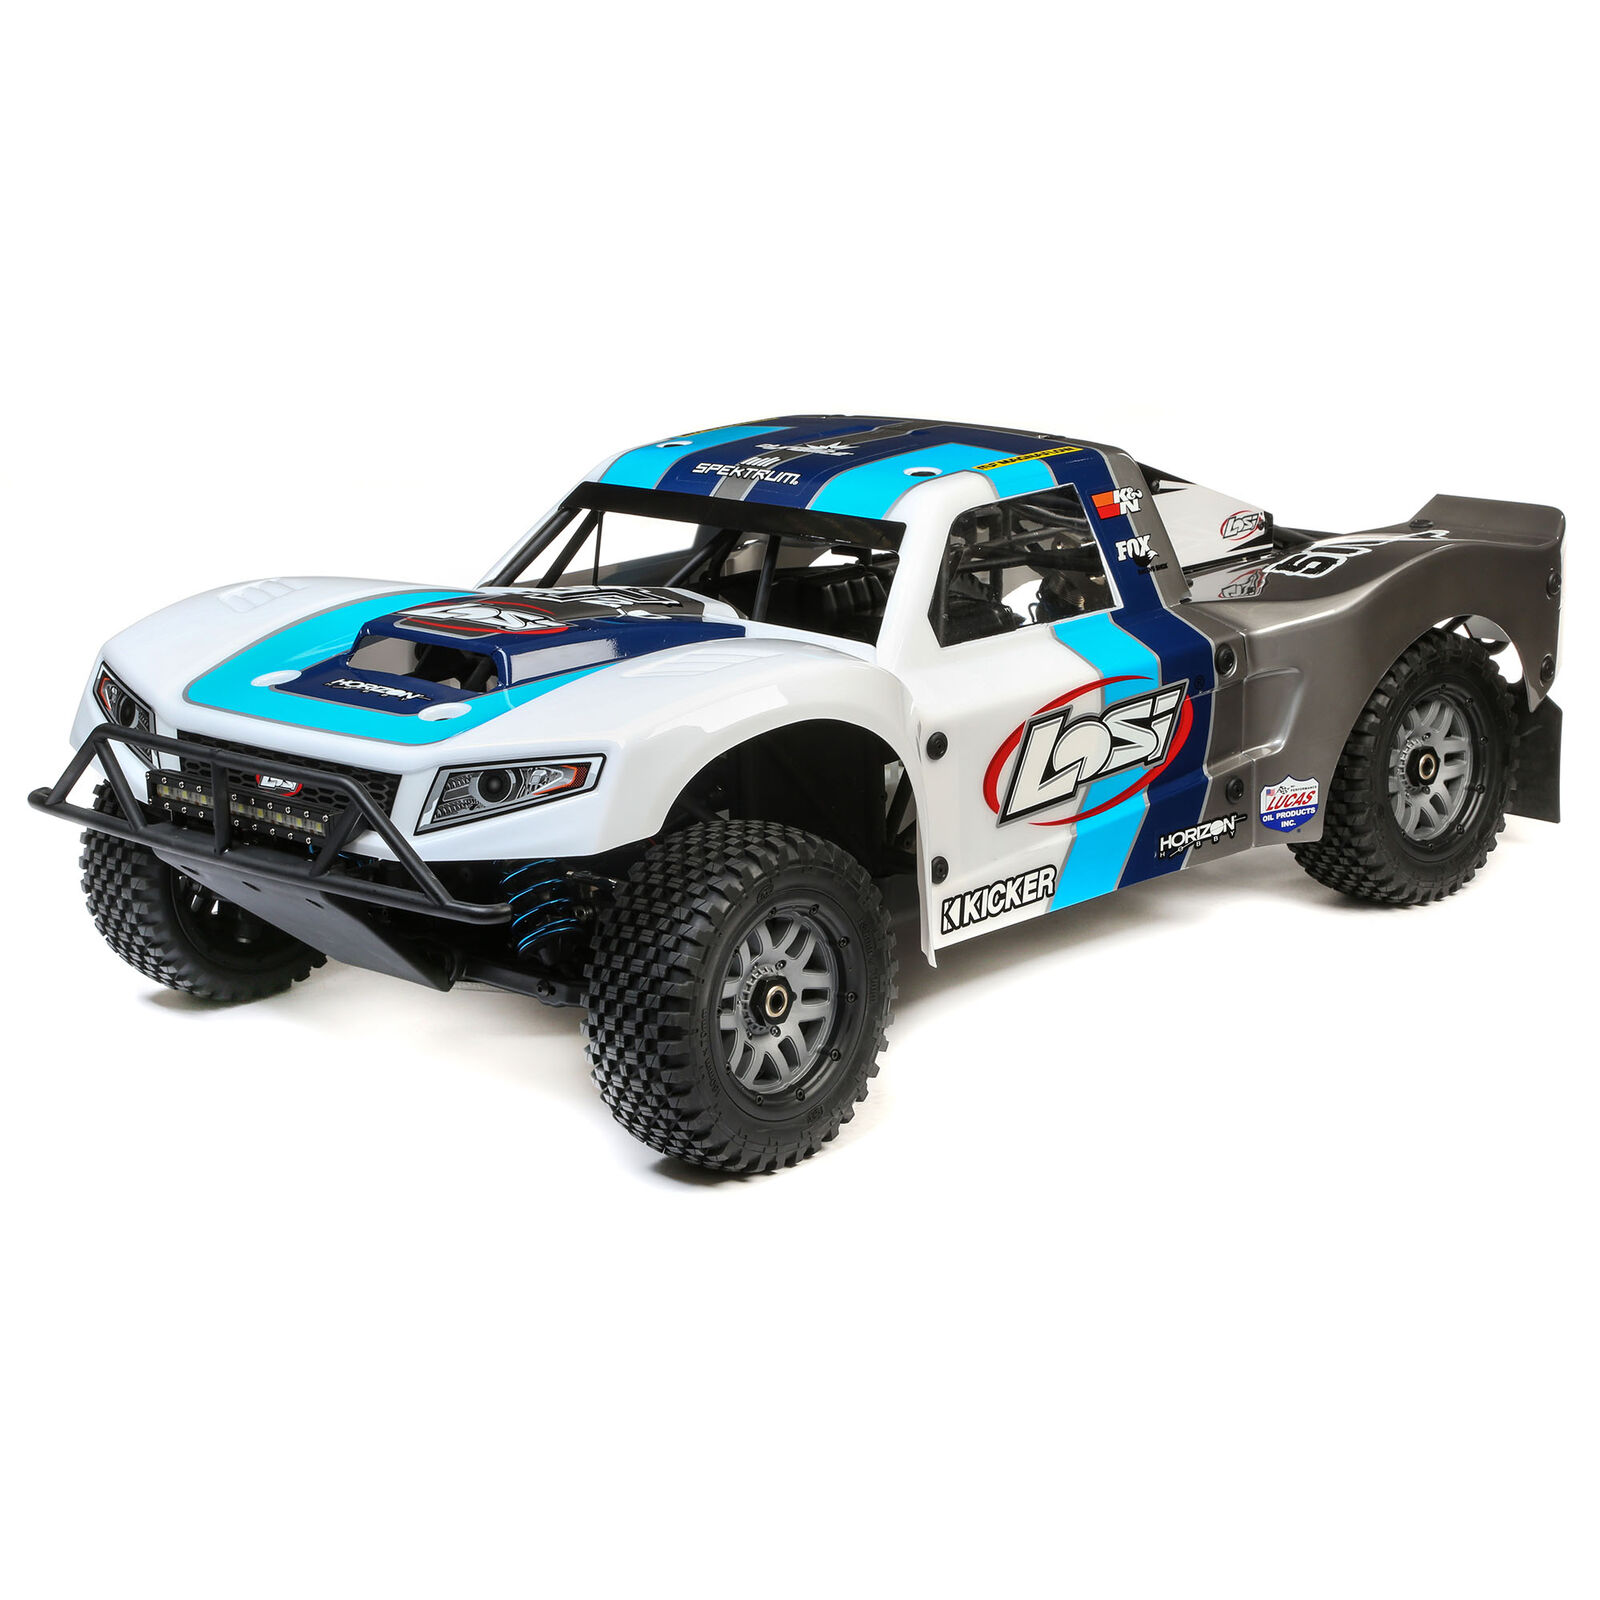 1/5 5IVE-T 2.0 4WD Short Course Truck Gas BND